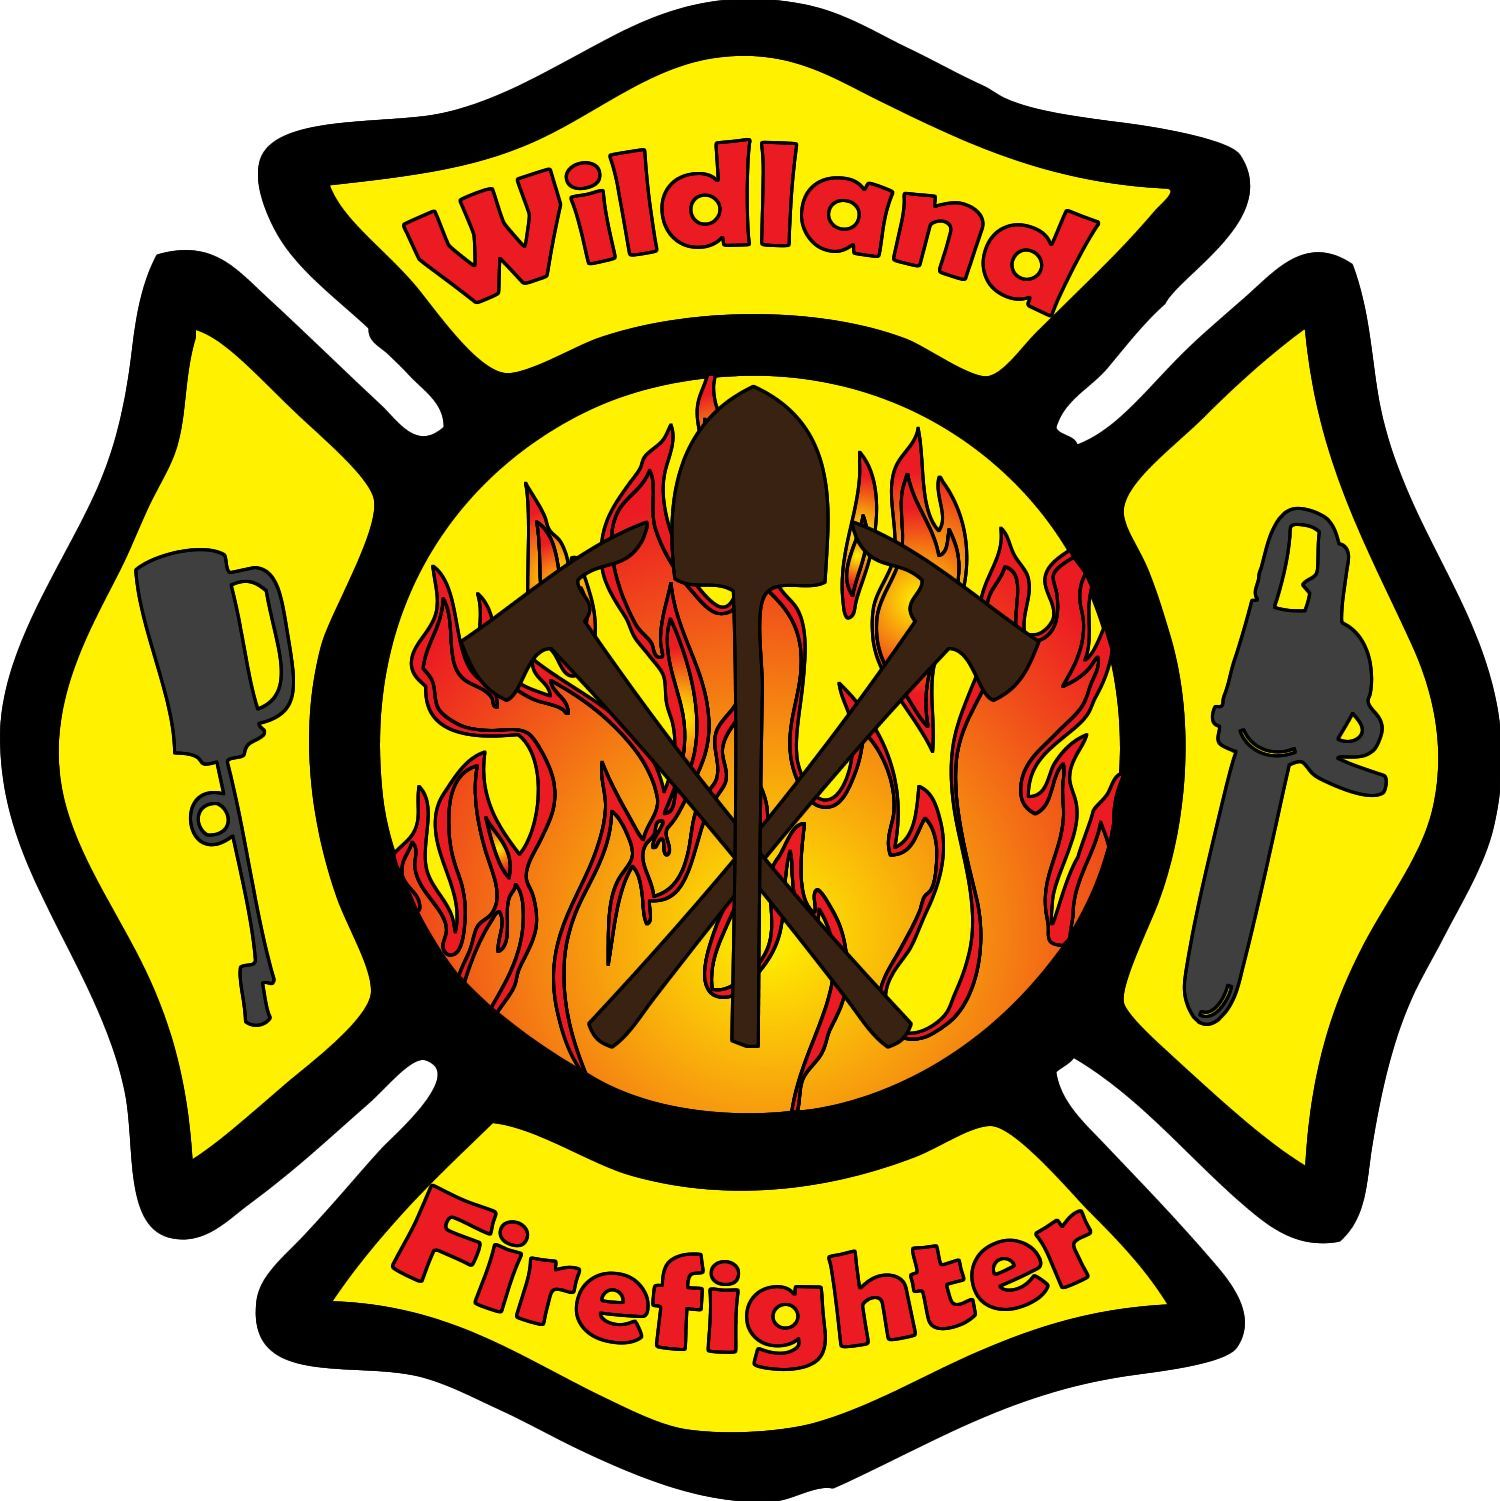 Wildland Firefighter Maltese Cross Tools Decal Feuerwehr